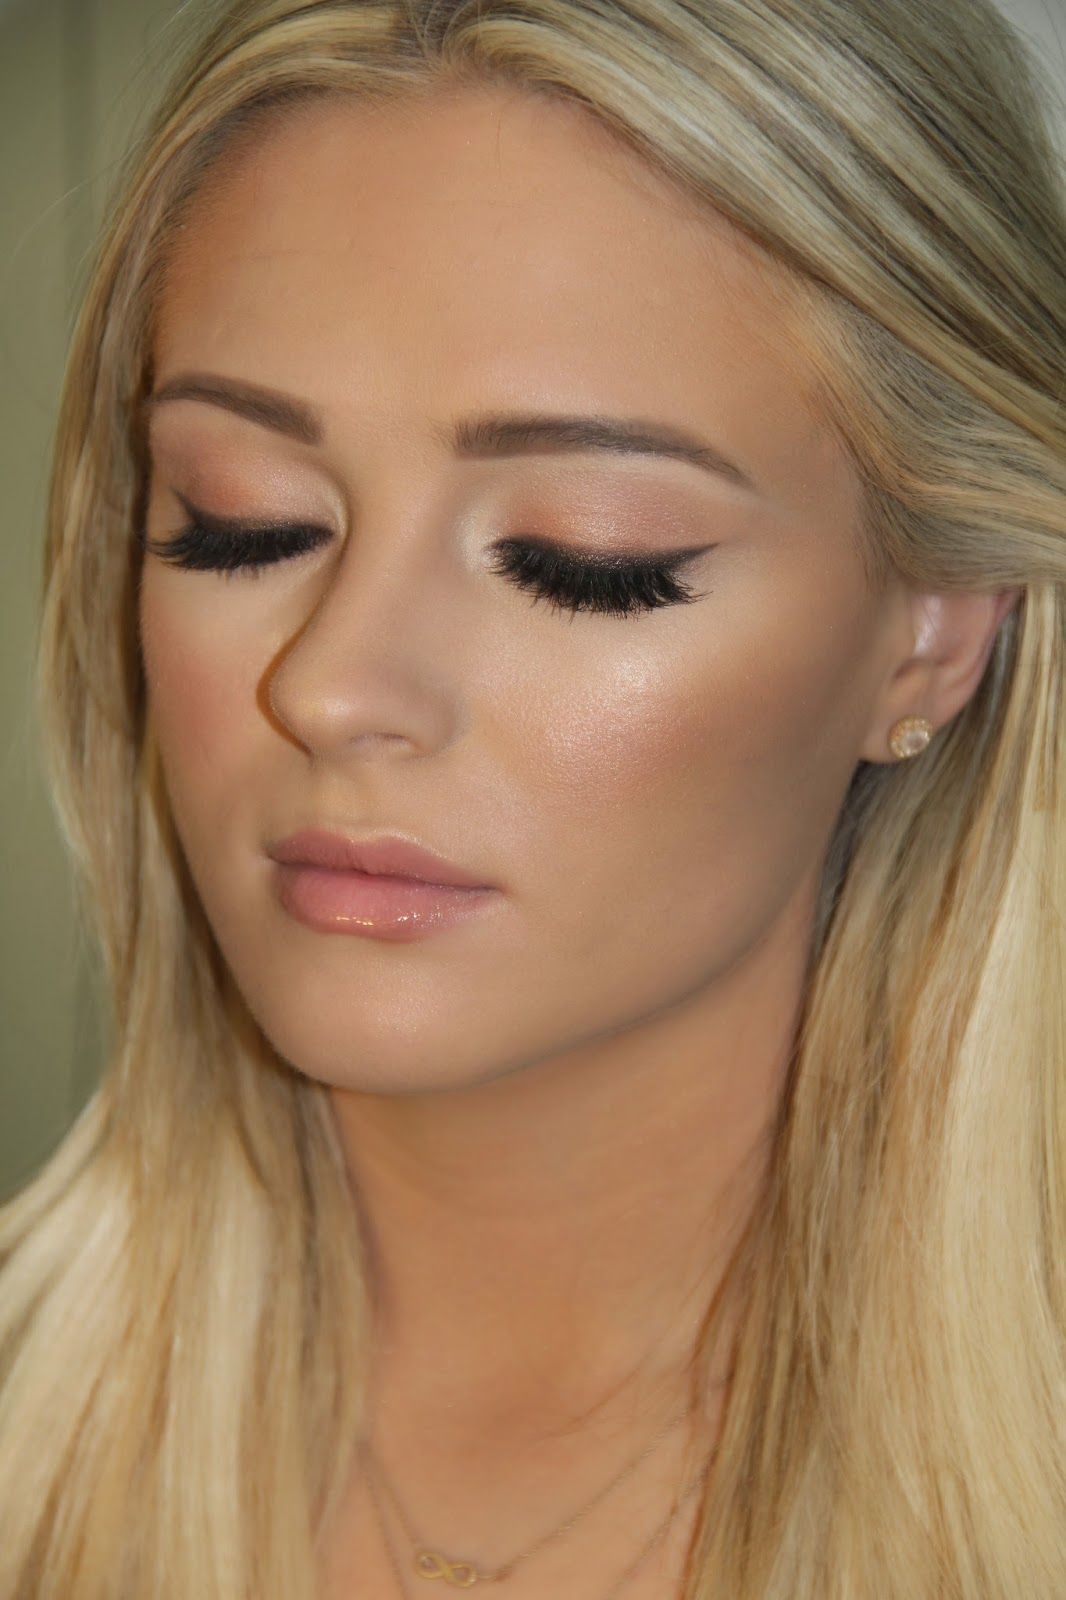 Kissable Complexions American Beauty Blonde hair makeup